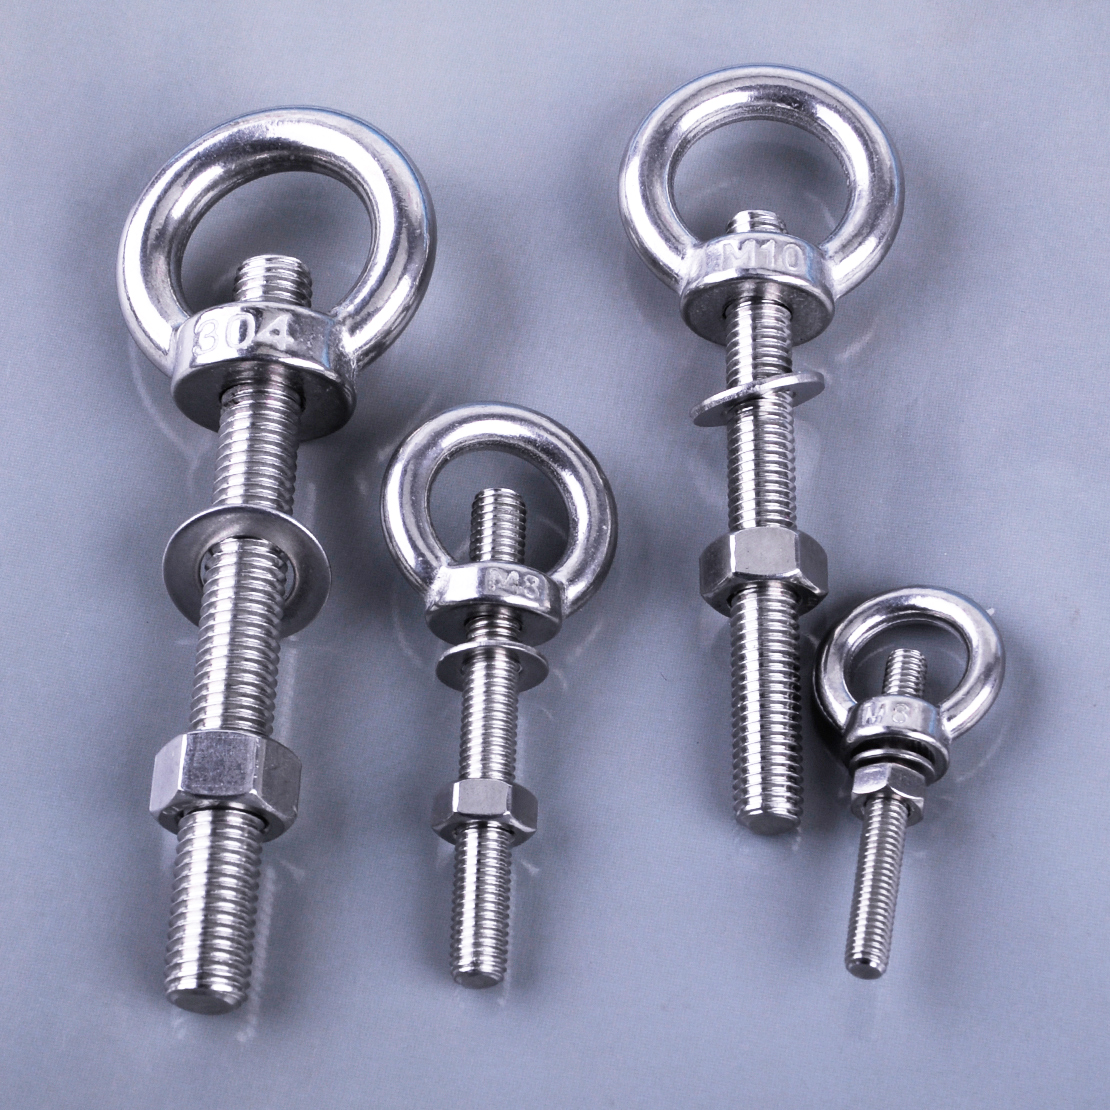 Color : M6x40 1Pc M6 M8 M10 M12 Stainless Steel Lifting Eye Bolts Eyebolts with Nuts /& Washers Set Round Ring Hook Bolt Screw Fasterners